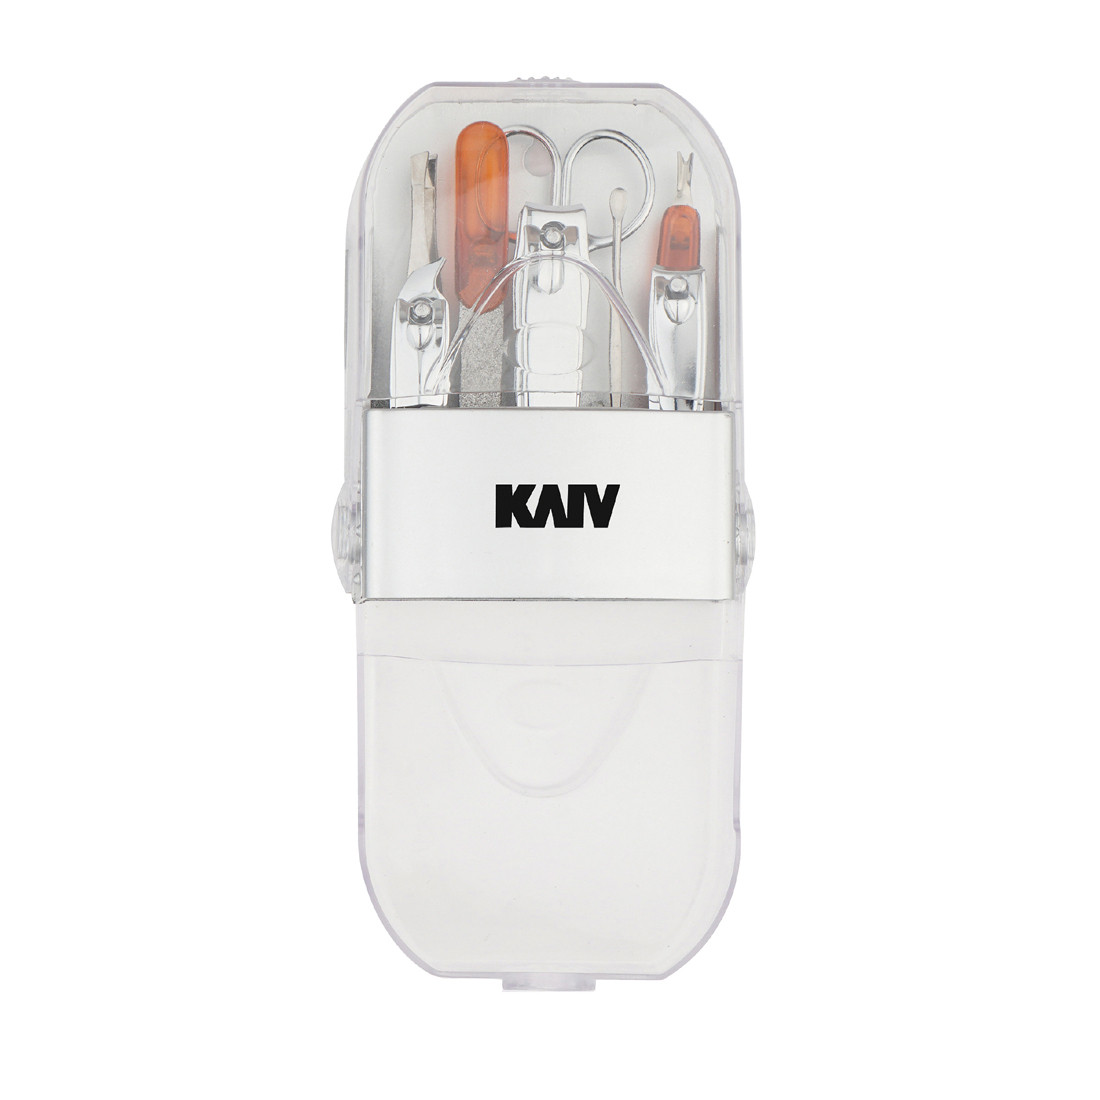 Kaiv Set of 8 Manicure Kit